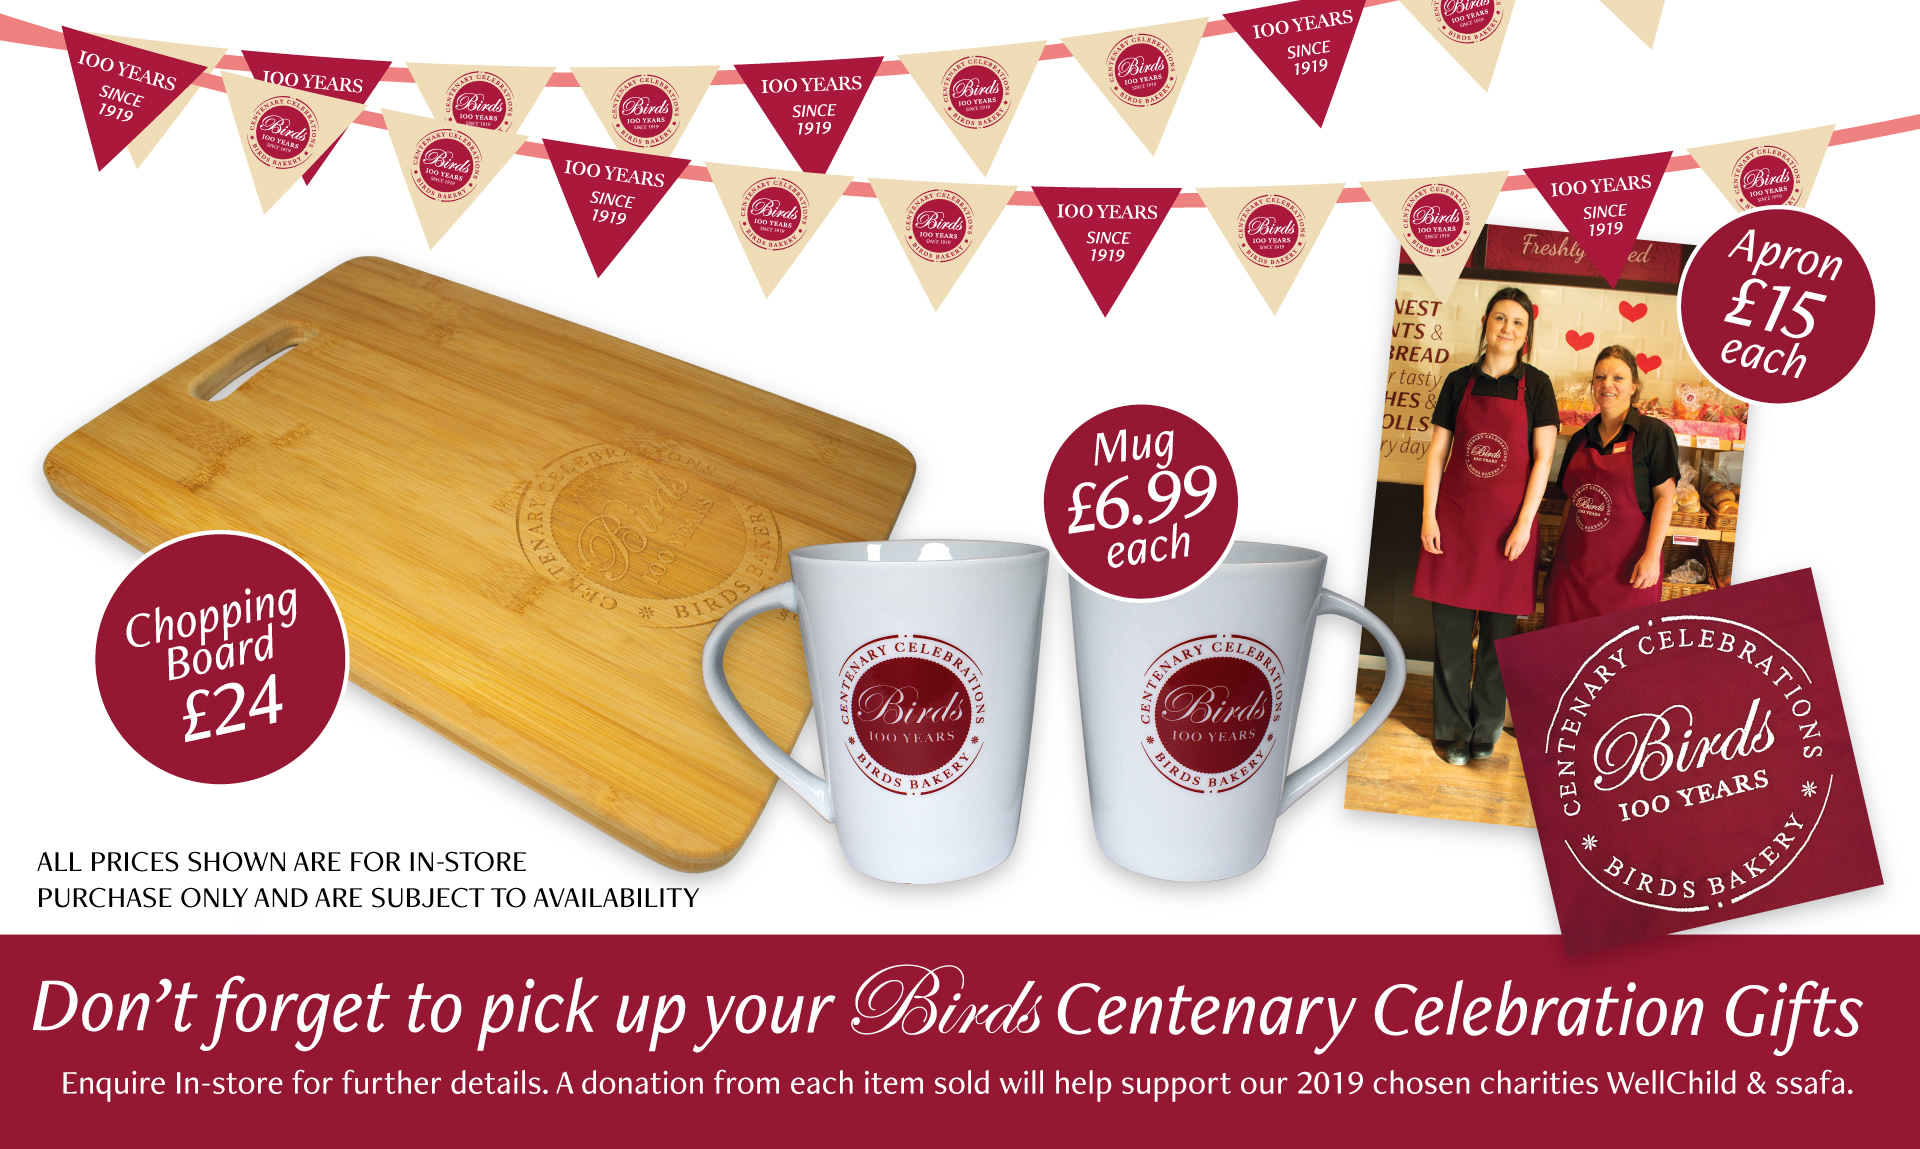 Don't forget to pick up your Birds Centenary Celebration Gifts - Enquire in store for further details. A donation from each item sold will help support our 2019 chosen charities WellChild and ssafa